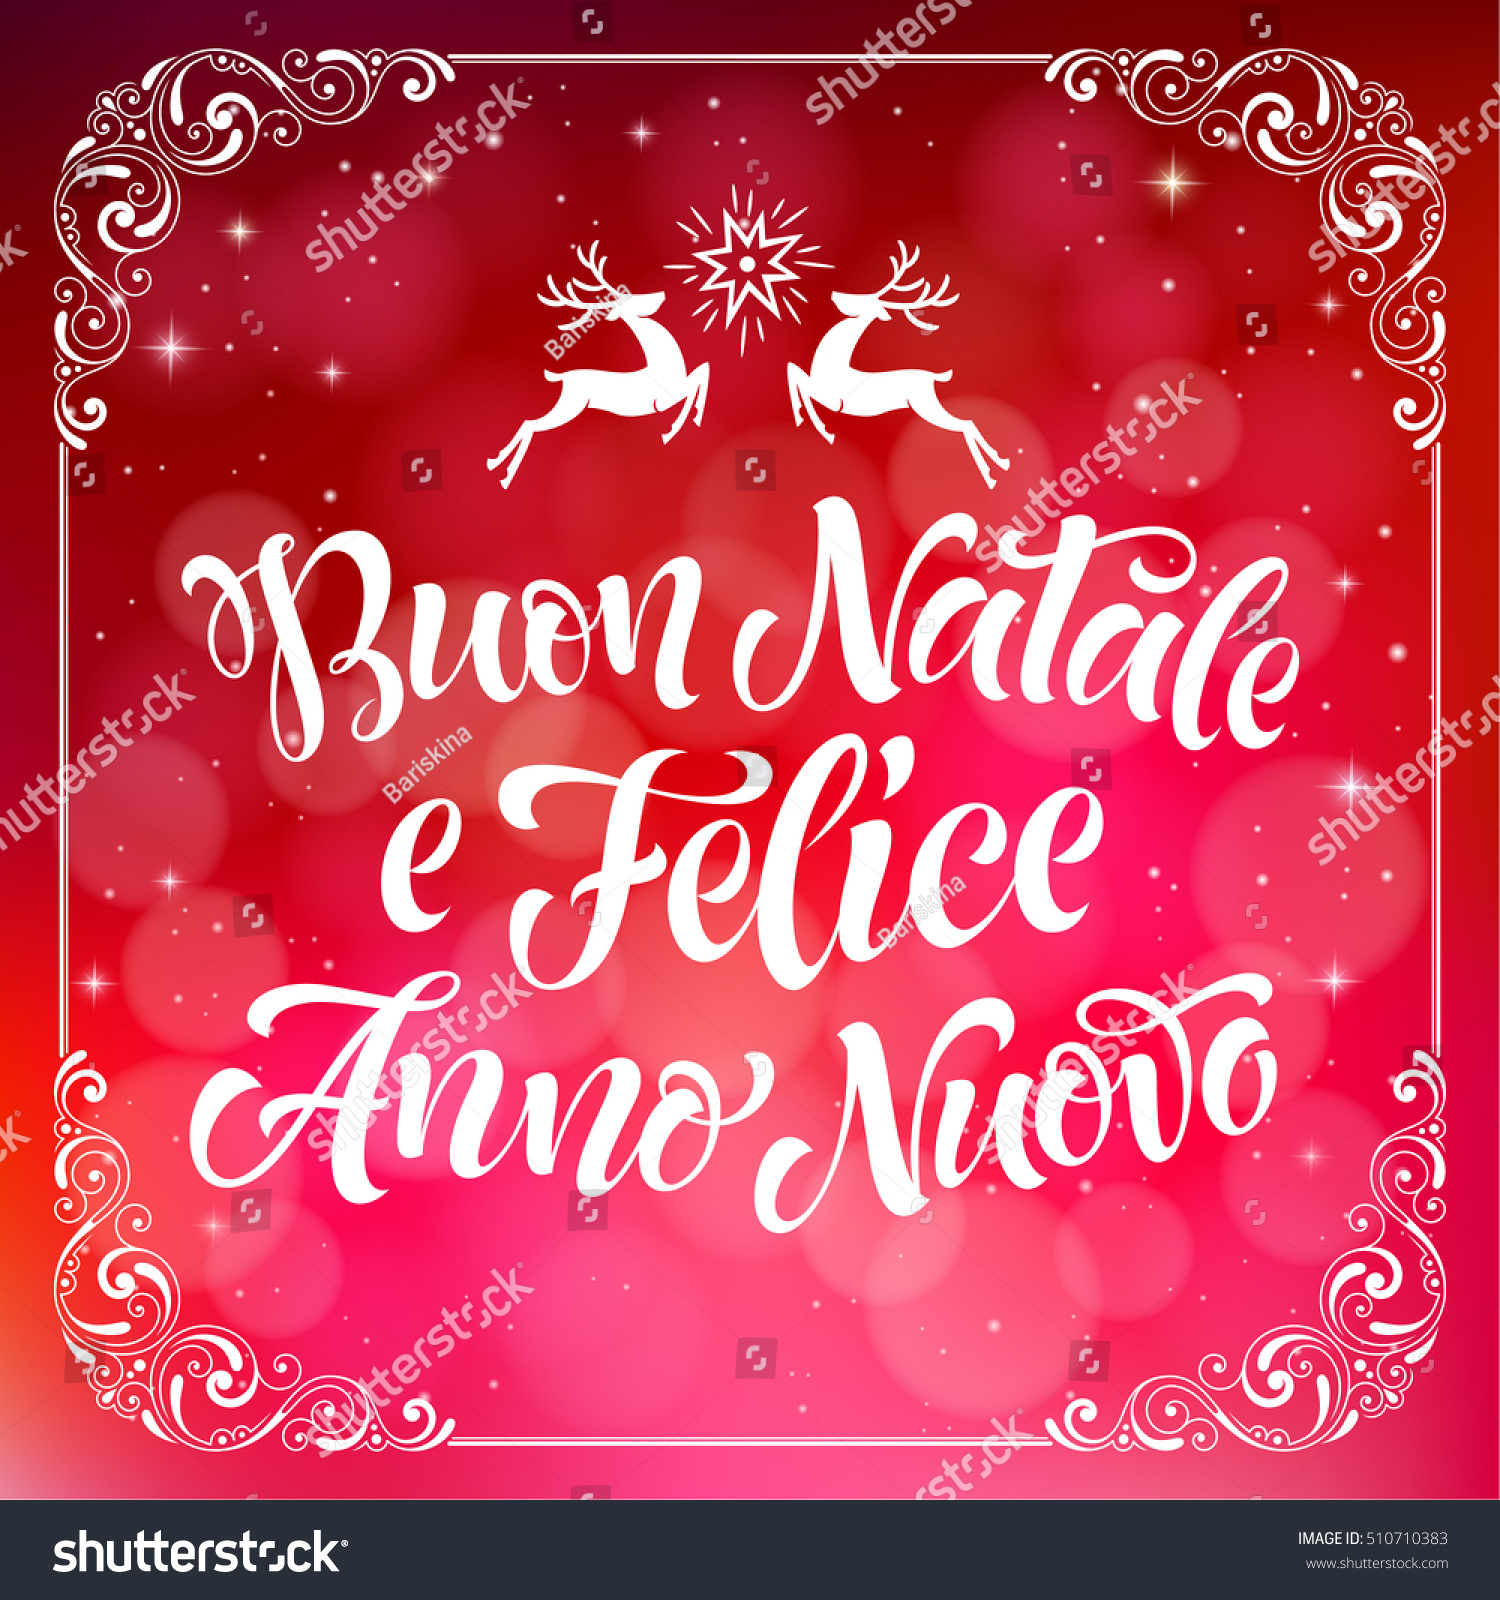 merry christmas and happy new year text in italian buon natale e felice anno nuovo - Merry Christmas And Happy New Year In Italian